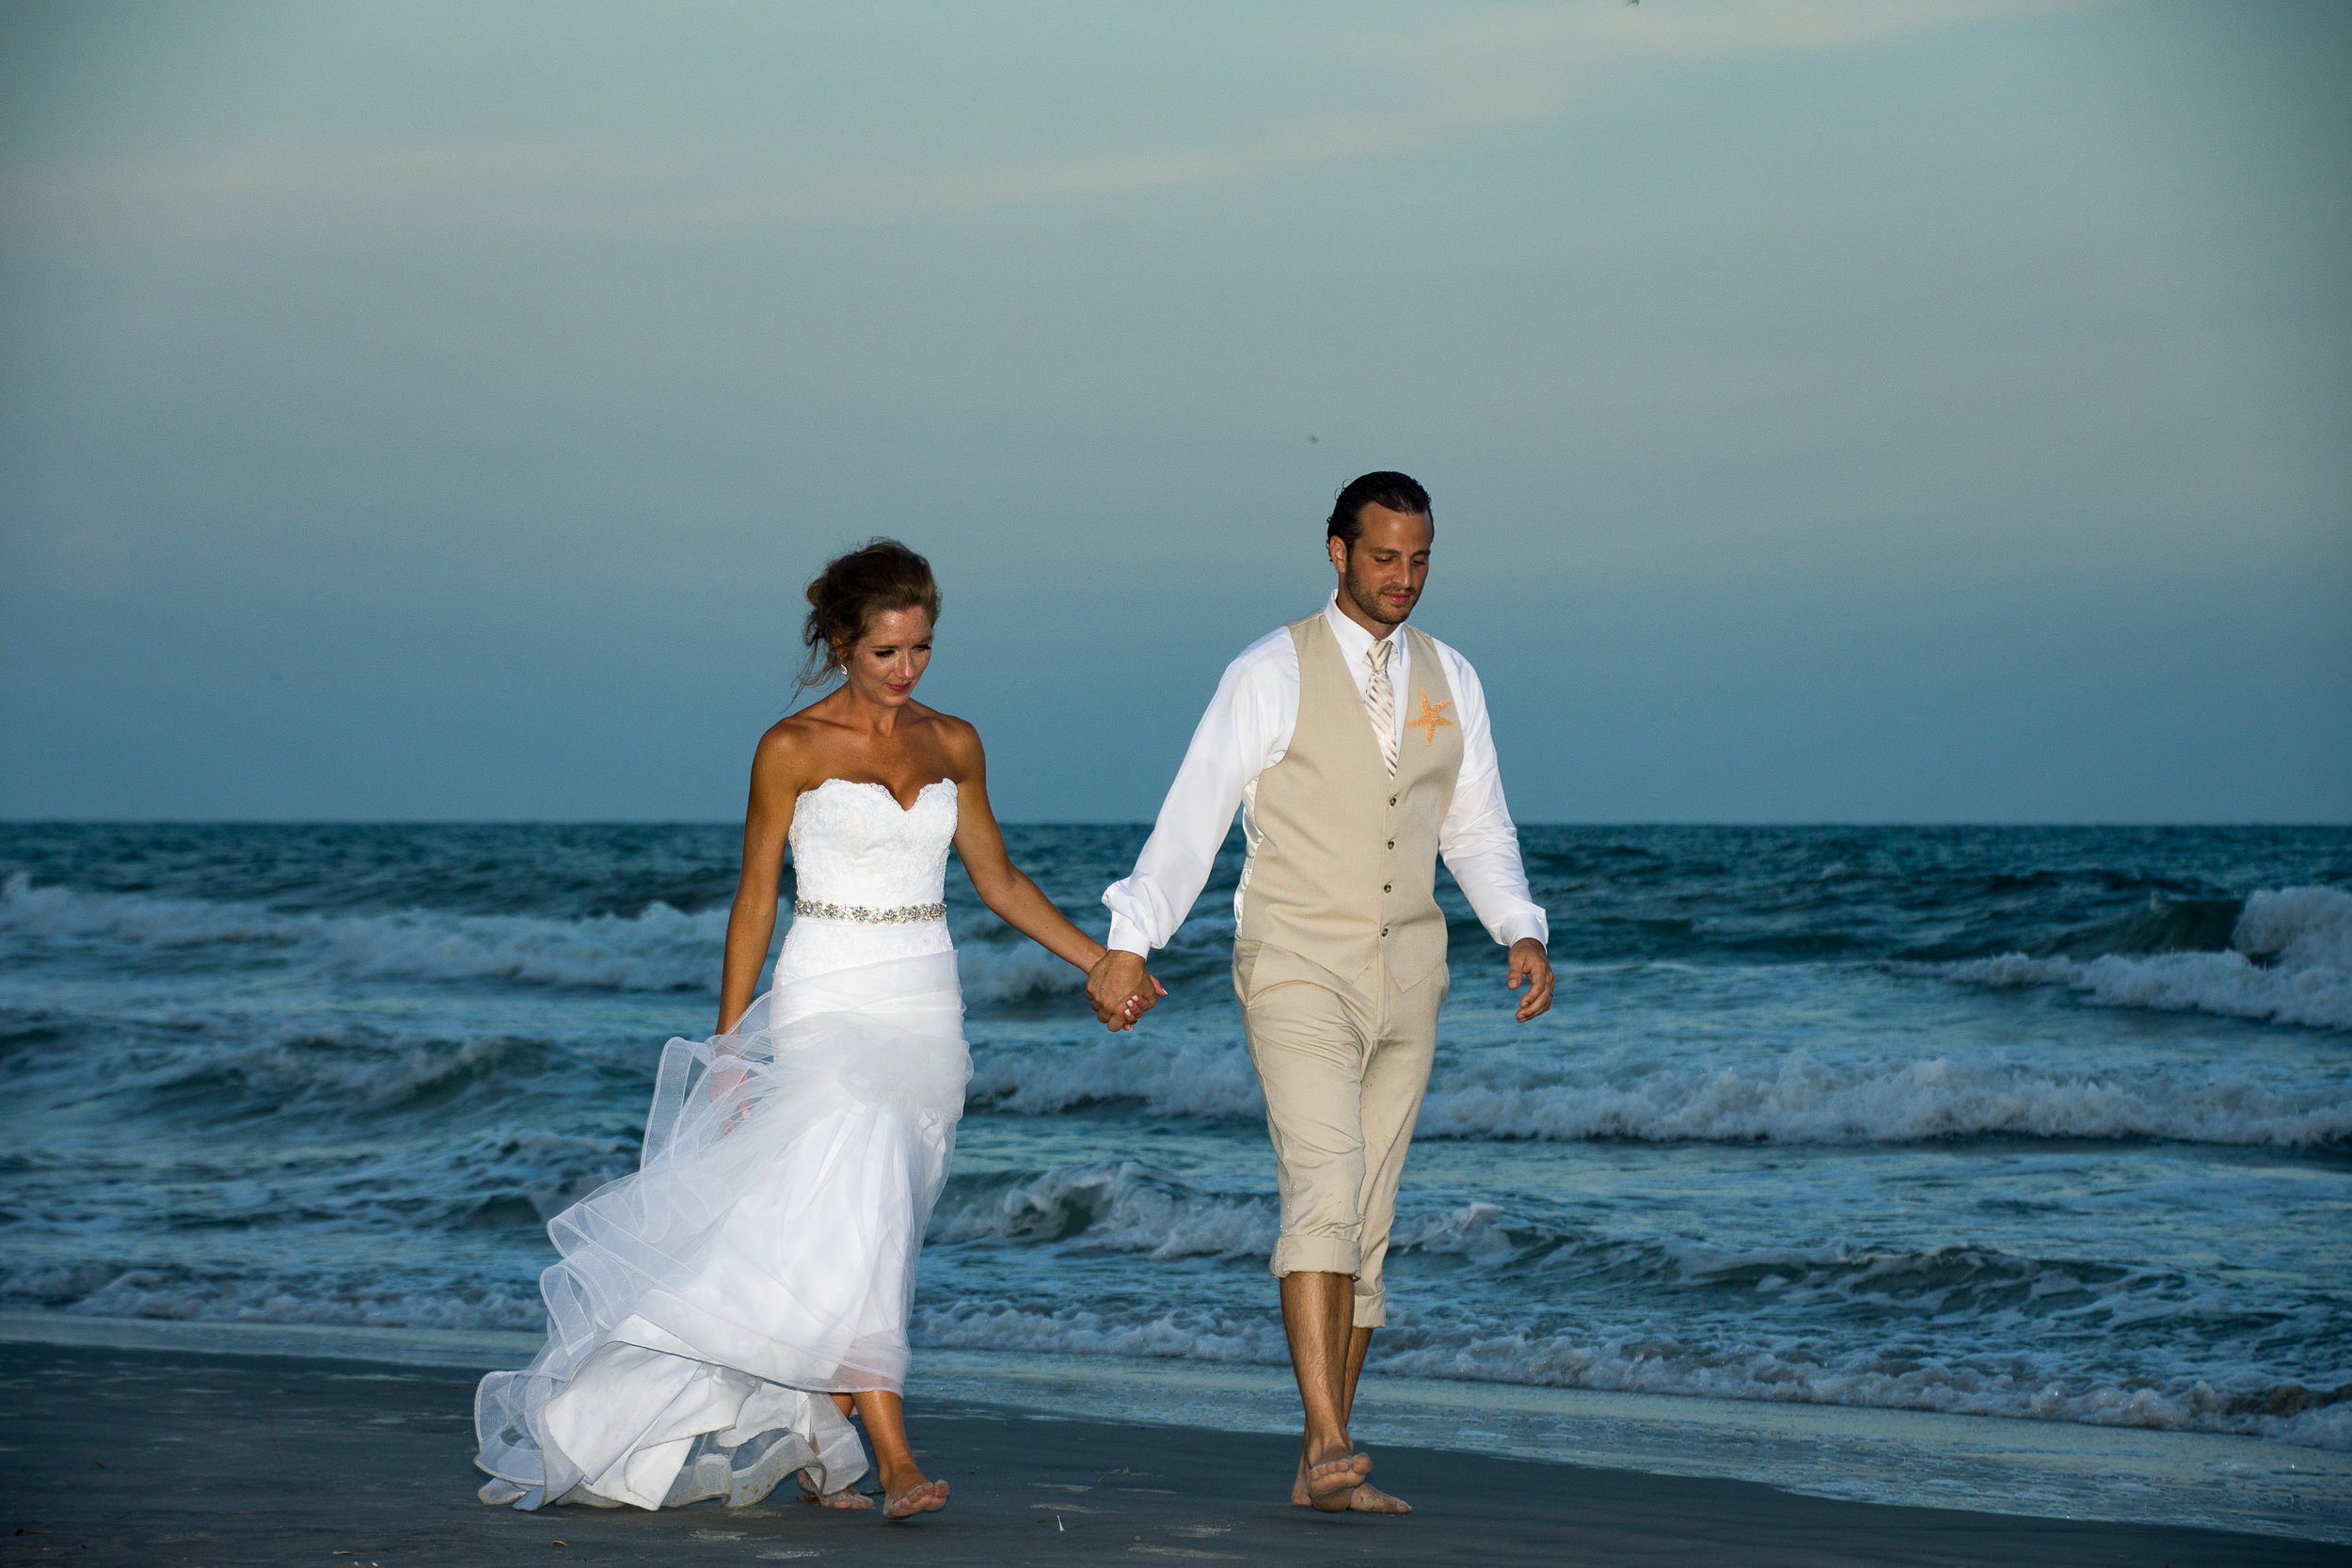 - Bride and groom walking at waters edge holding hands after ceremony.